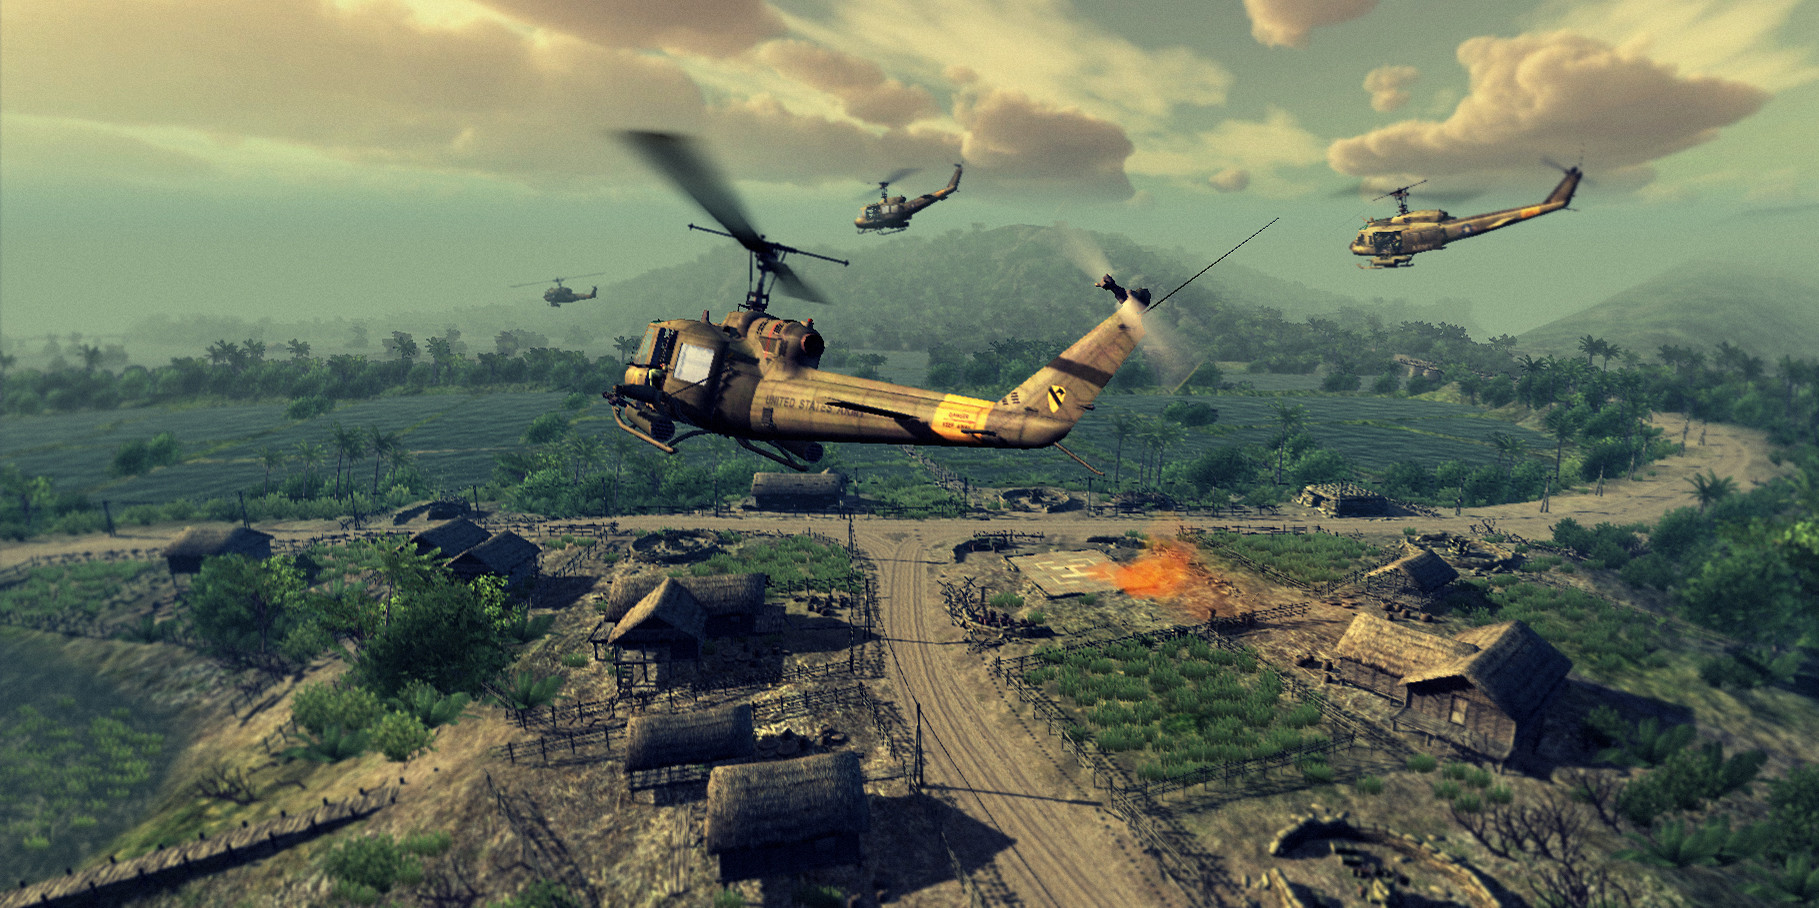 100 Pictures of Heliborne